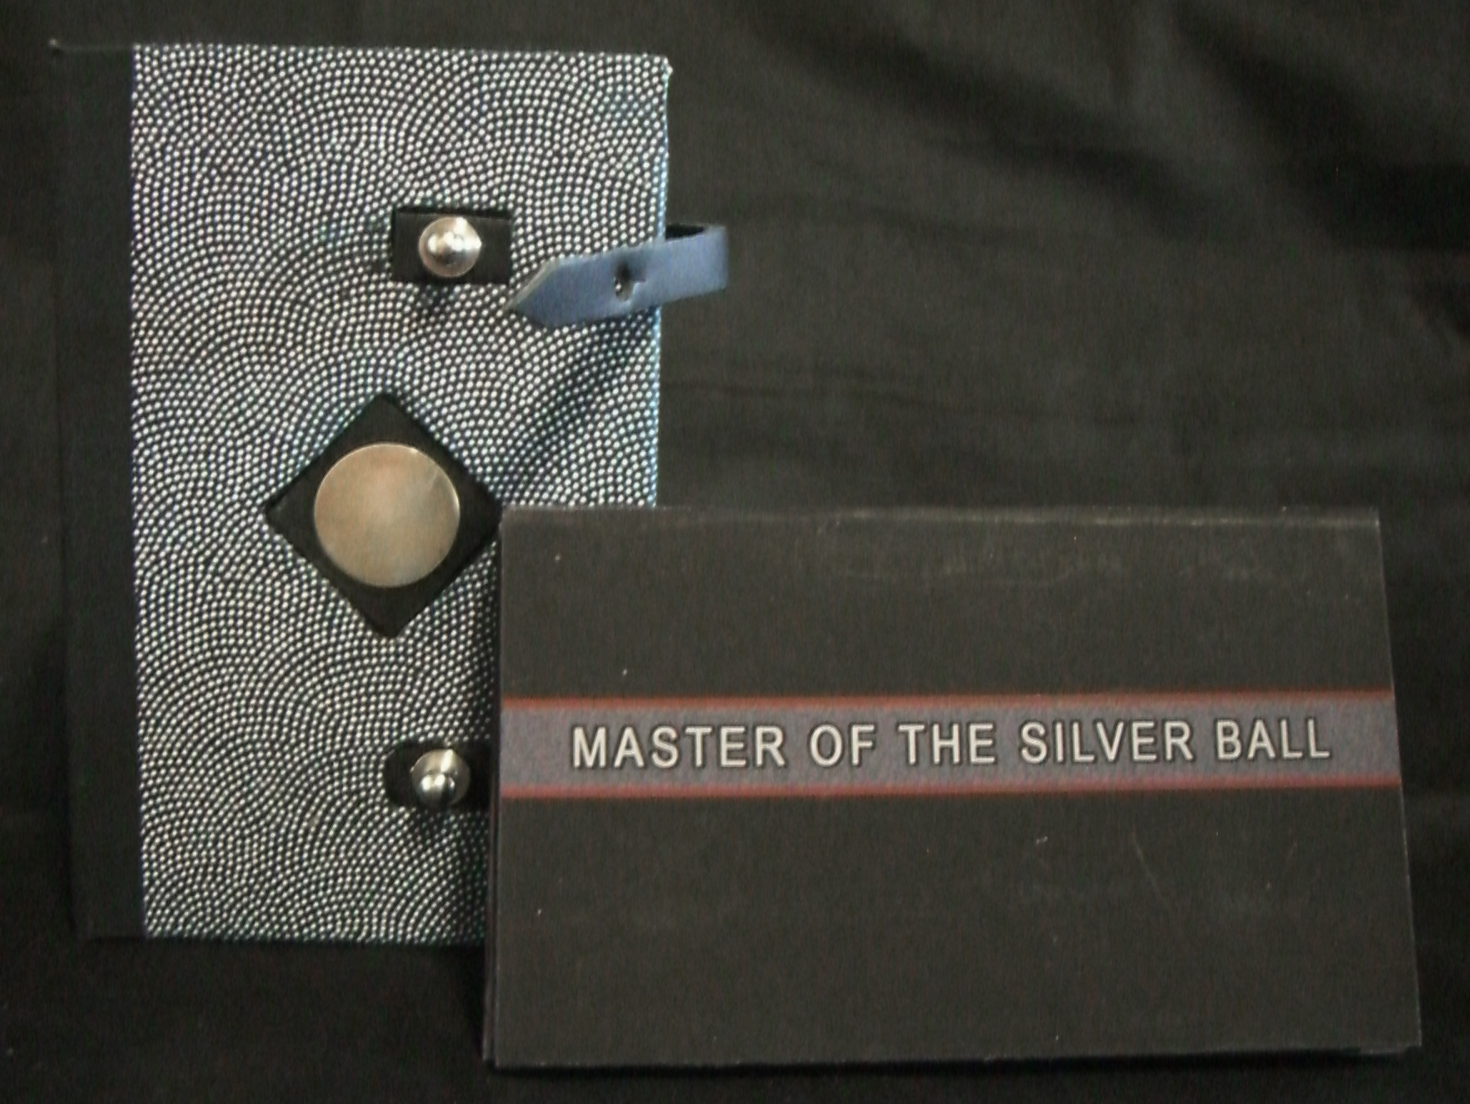 """Robert Hunter, """"Master of the Silver Ball,"""" digital imaging-archivial Ink Jet print on Somerset paper book board, leather straps, Japenese decorative Paper, Silver Disk, 2013"""